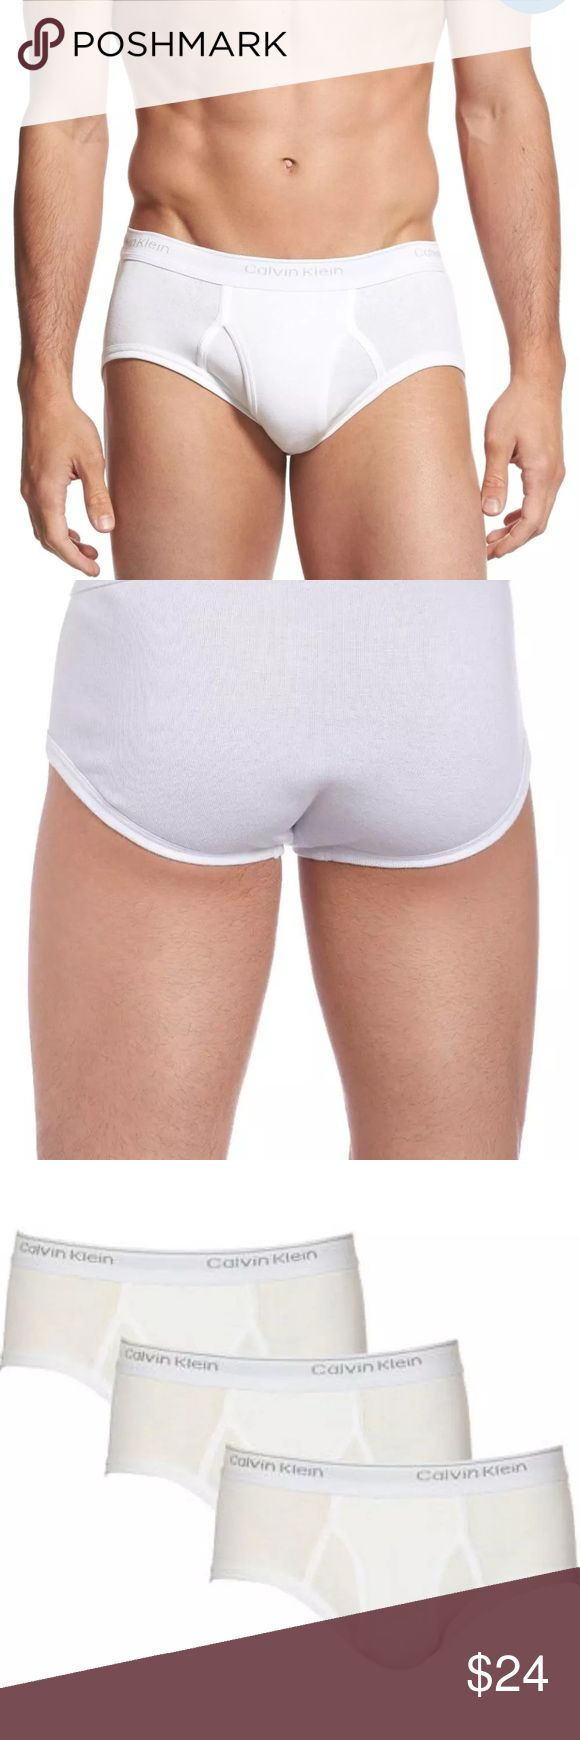 Calvin Klein Mens ClassicFit BriefsUnderwear 3Pack Calvin Klein CK Mens Classic Fit Briefs Underwear 3-Pack. Calvin Klein CK Mens Classic Fit Briefs Underwear 3-Pack  Mens brief underwear. 3-pack, classic fit, elastic waistband, lightweight. Soft, breathable and comfortable cotton  100% Authentic - New with tags  Color: White Fabric Composition: 100% cotton  Condition: New with tags Calvin Klein Underwear & Socks Briefs